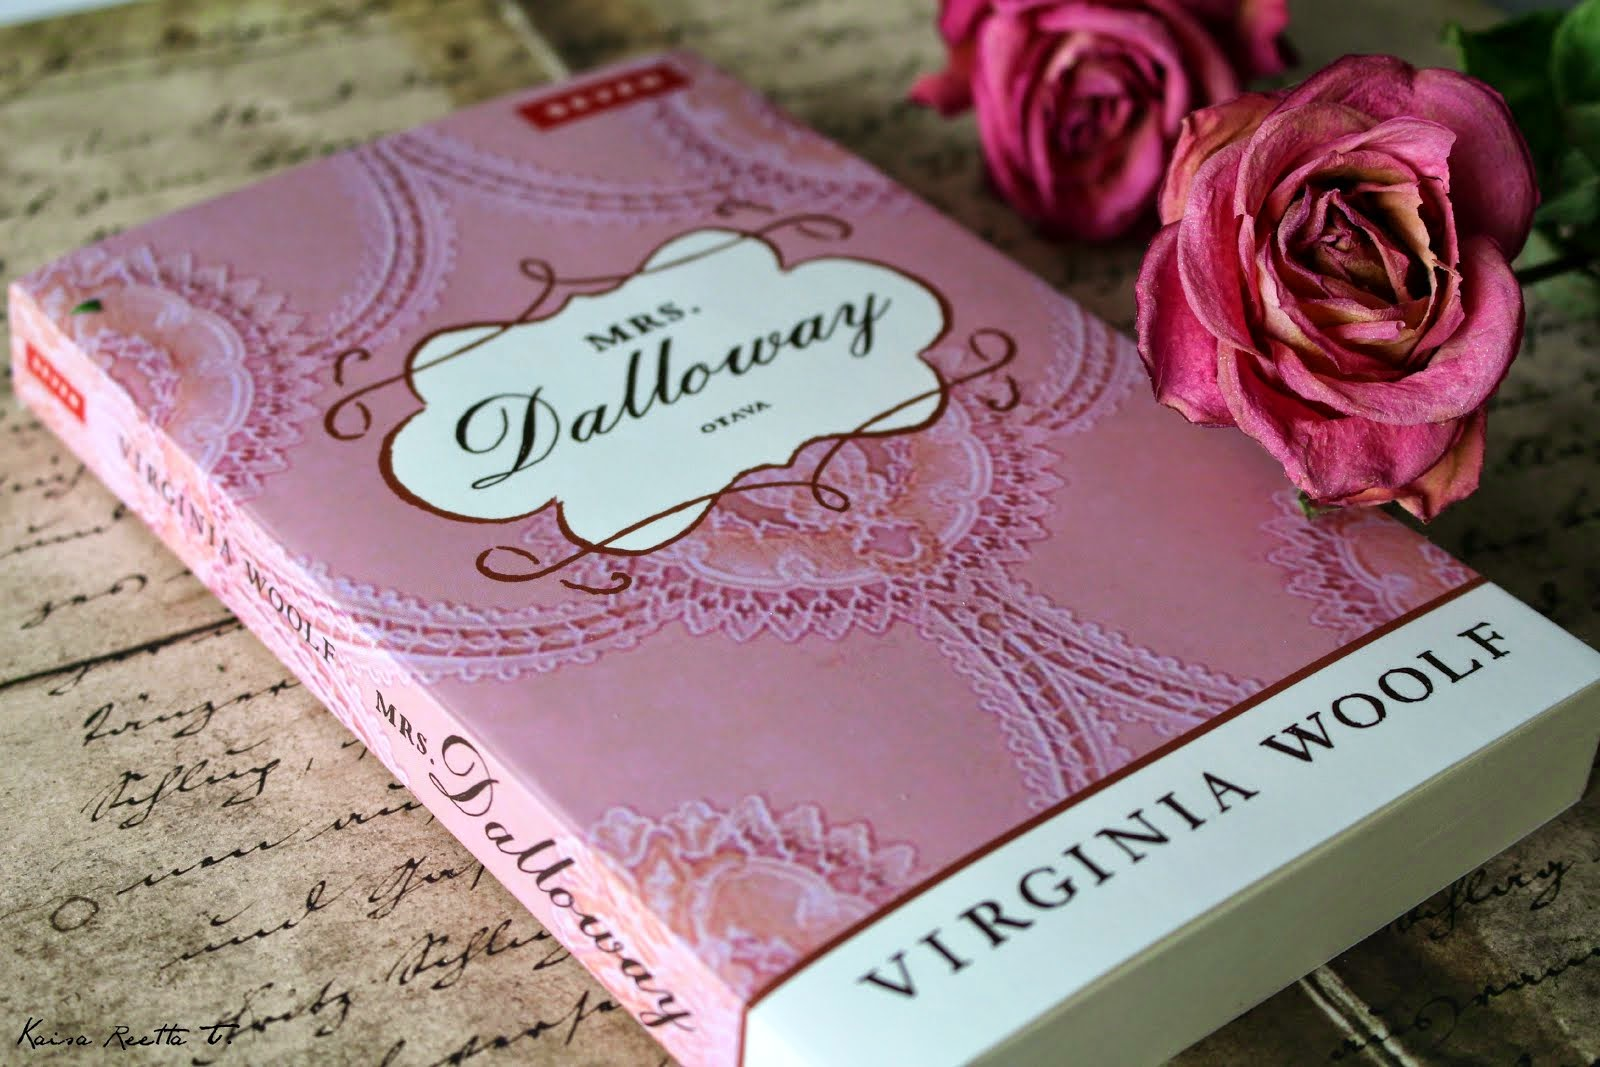 Virginia Woolf: Mrs. Dalloway